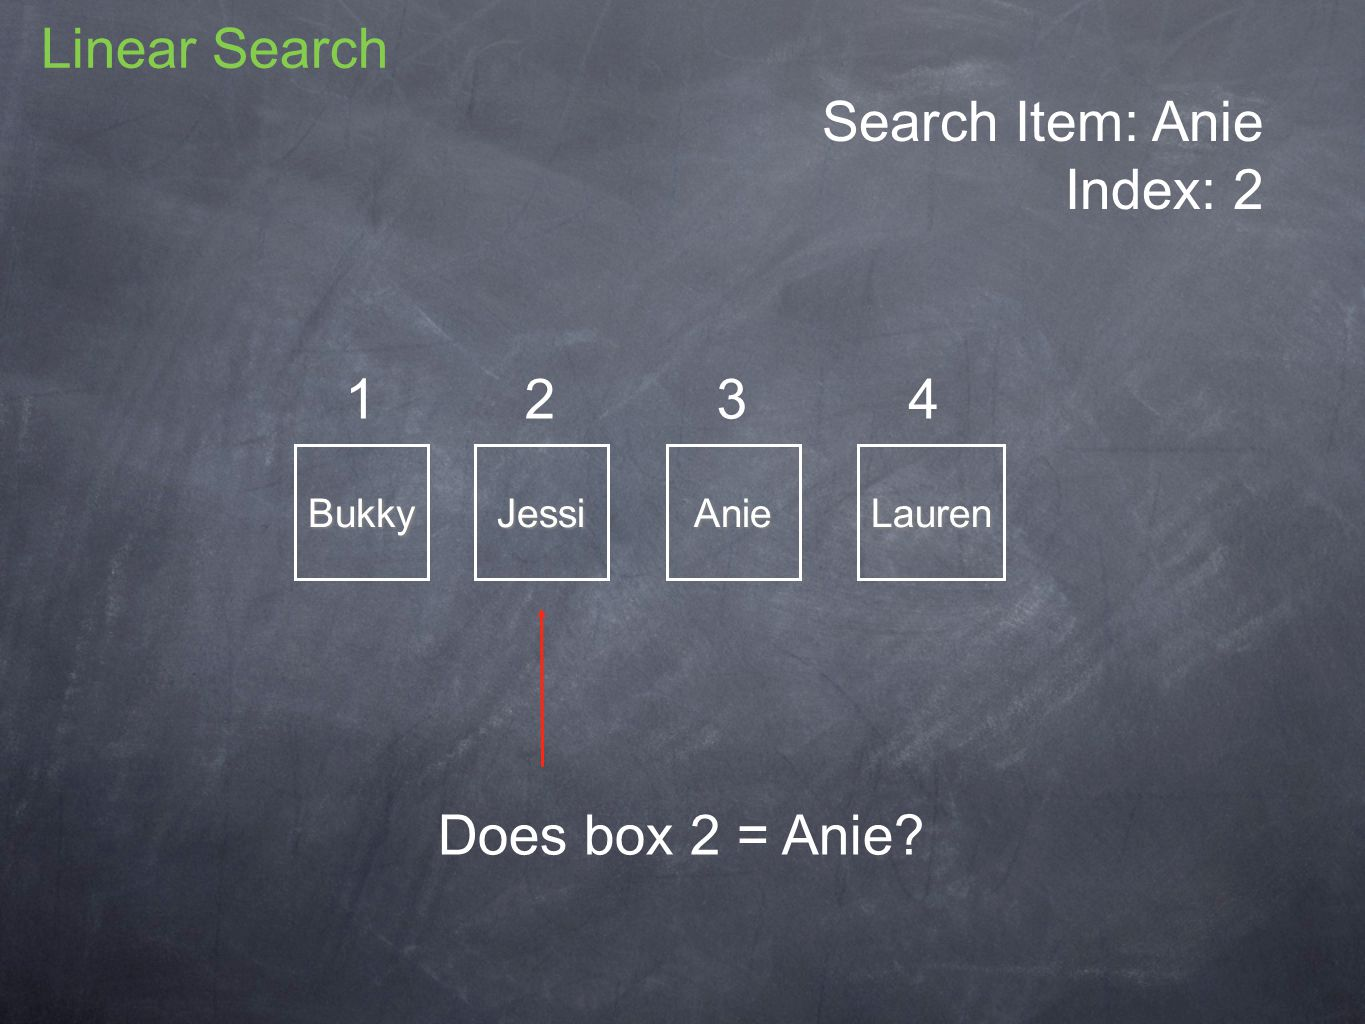 Search Item: Anie Index: 2 BukkyJessiAnieLauren 1234 Does box 2 = Anie Linear Search